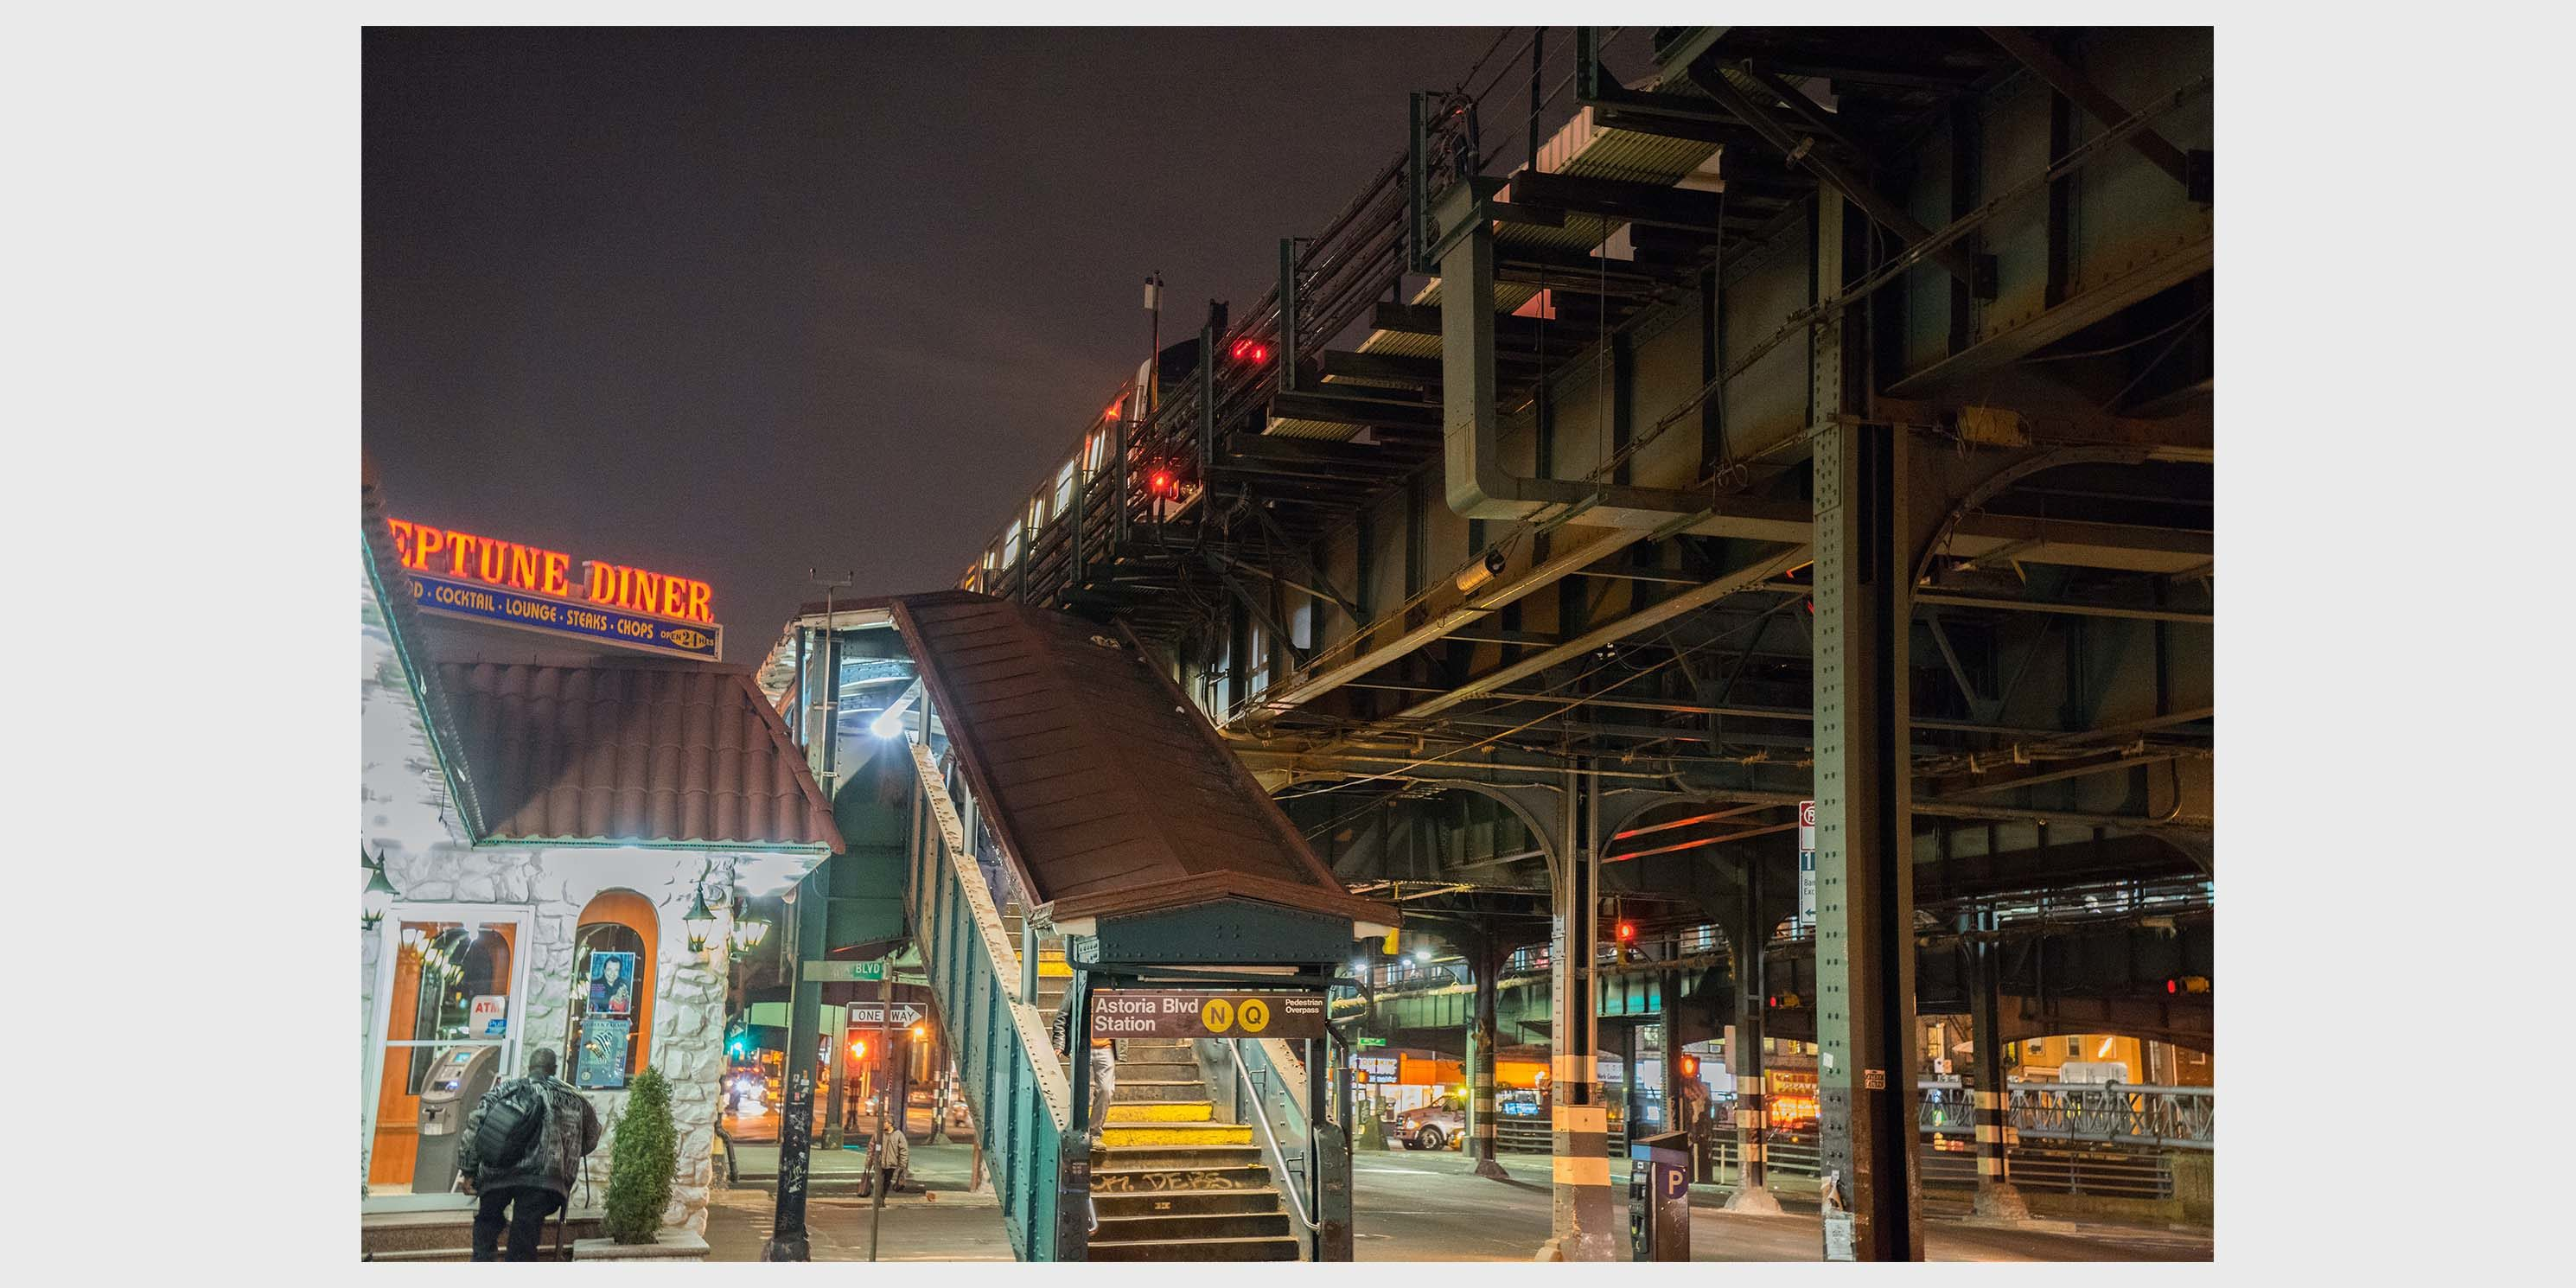 stairway to the elevated Astoria Blvd Station in Queens